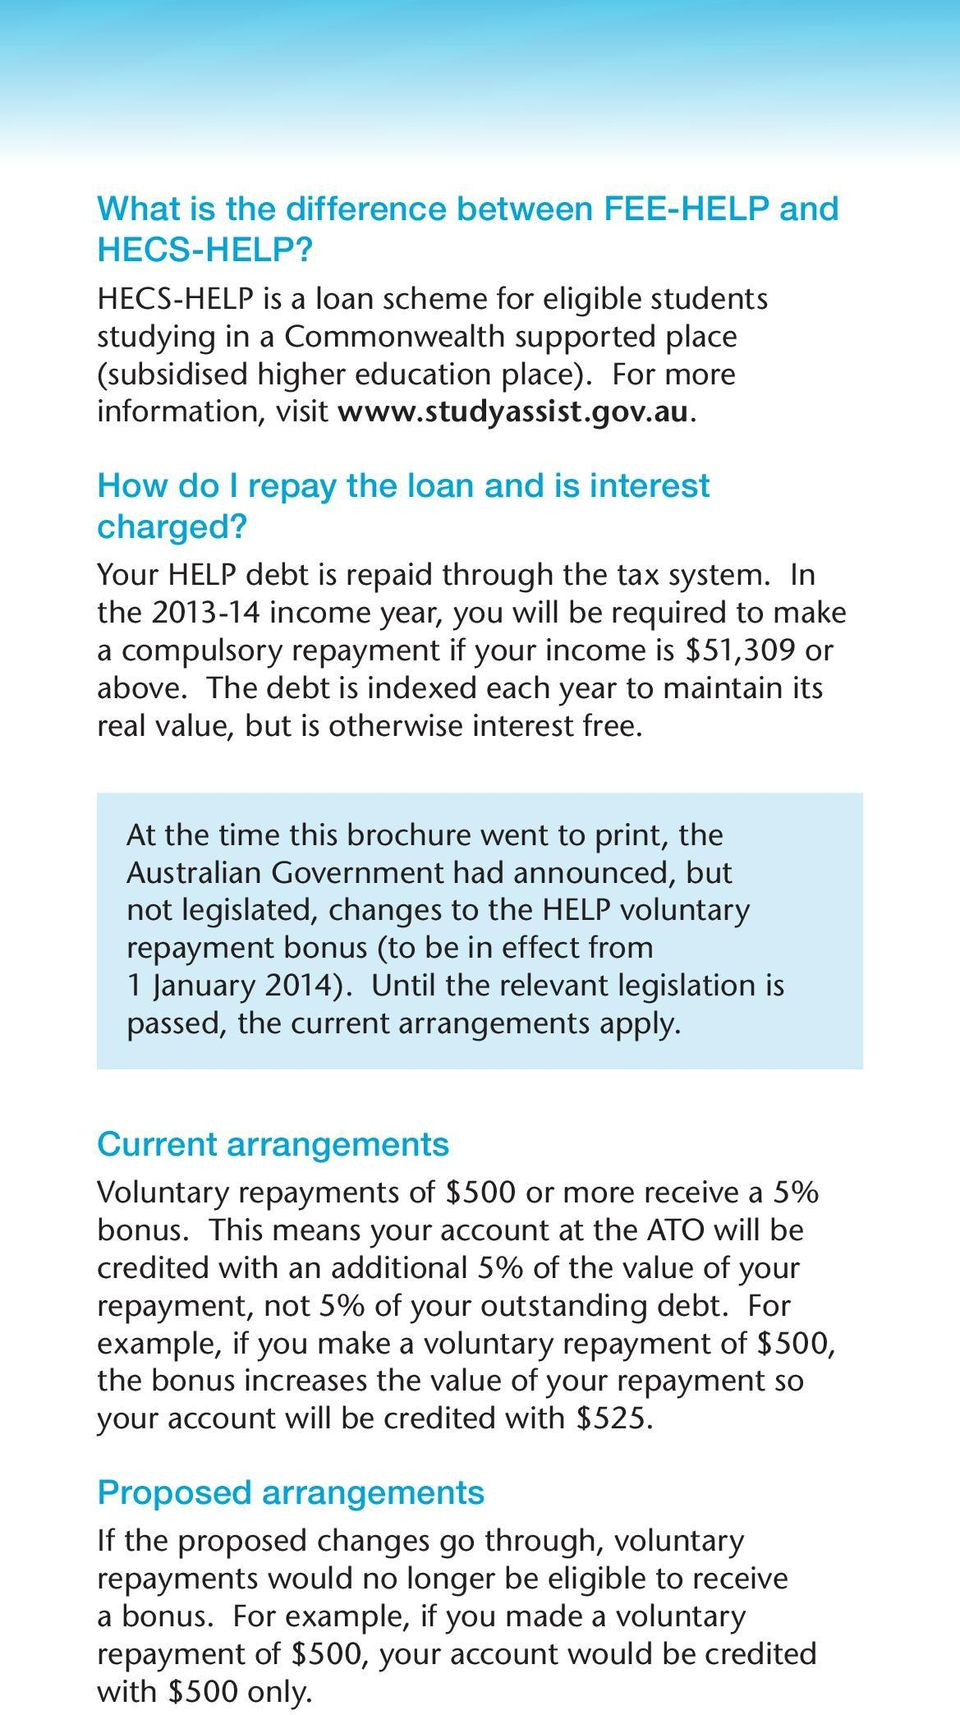 In the 2013-14 income year, you will be required to make a compulsory repayment if your income is $51,309 or above.